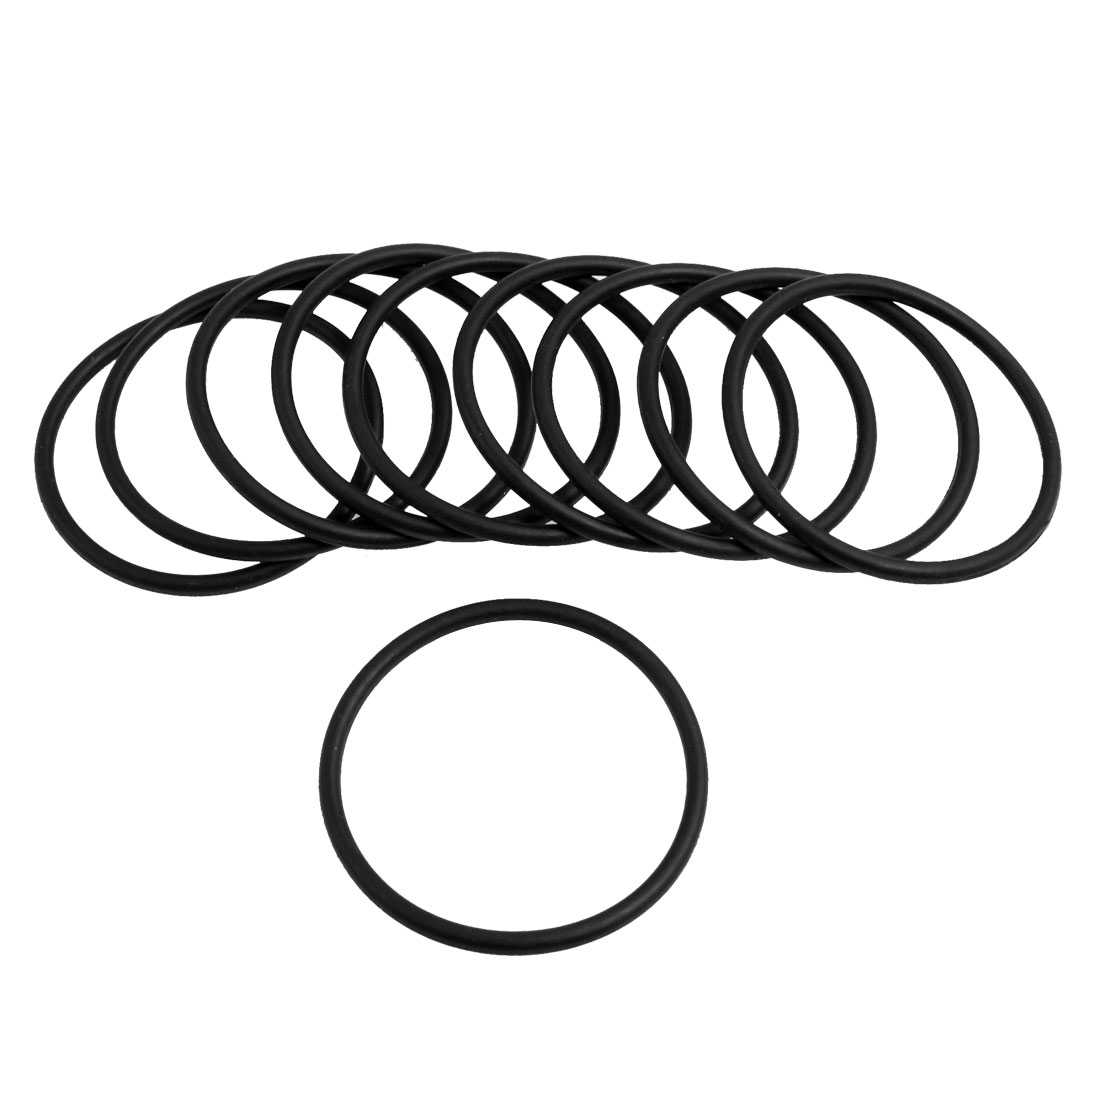 UXCELL 10 Pcs Black Rubber 40Mm X 2.5Mm Oil Seal O Rings Gaskets Washers